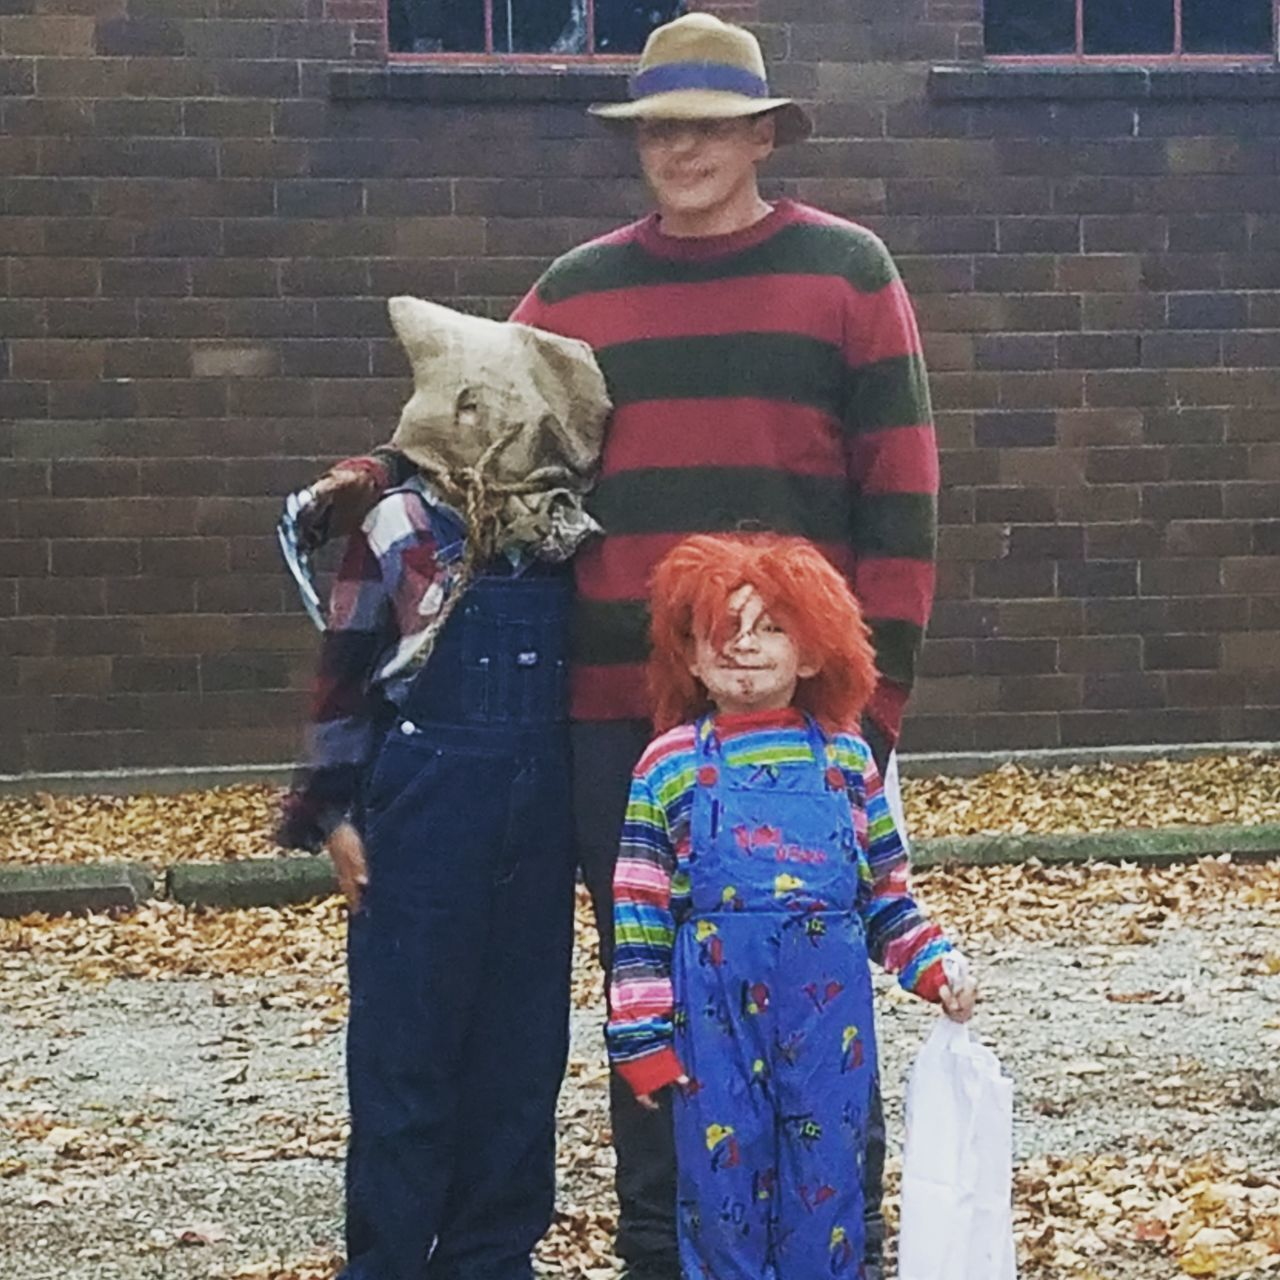 Freddykrueger Chucky Jasonvoorhes Adult Togetherness Two People Mature Adult Adults Only People Men Outdoors Day Warm Clothing Rural Scene 2017 Scary Indiana Klein Halloween Halloween_Collection